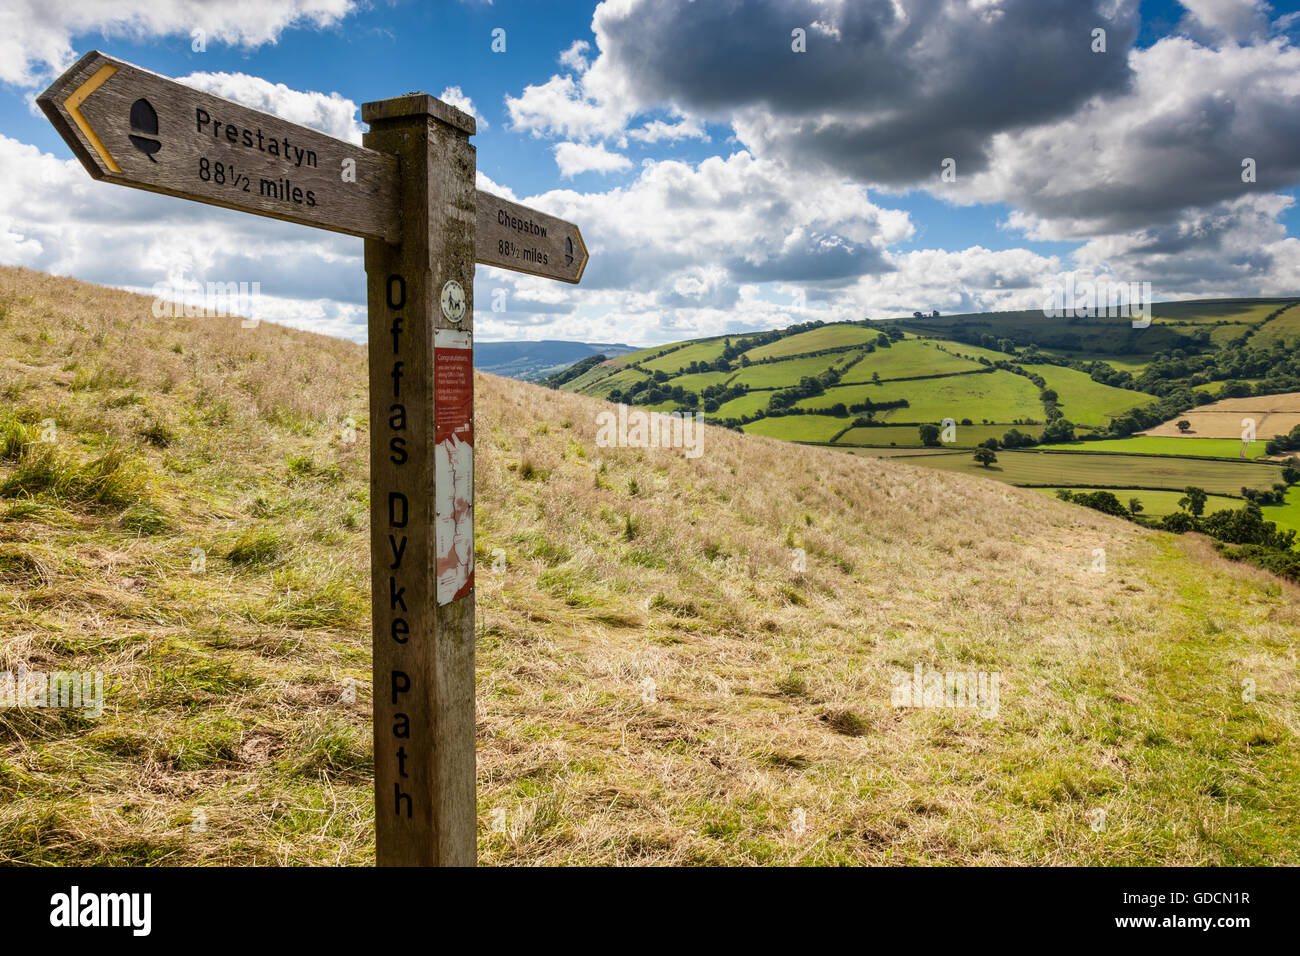 The Clun Valley seen from the halfway along the Offa's Dyke National Trail near Newcastle on Clun, Shropshire, - Stock Image